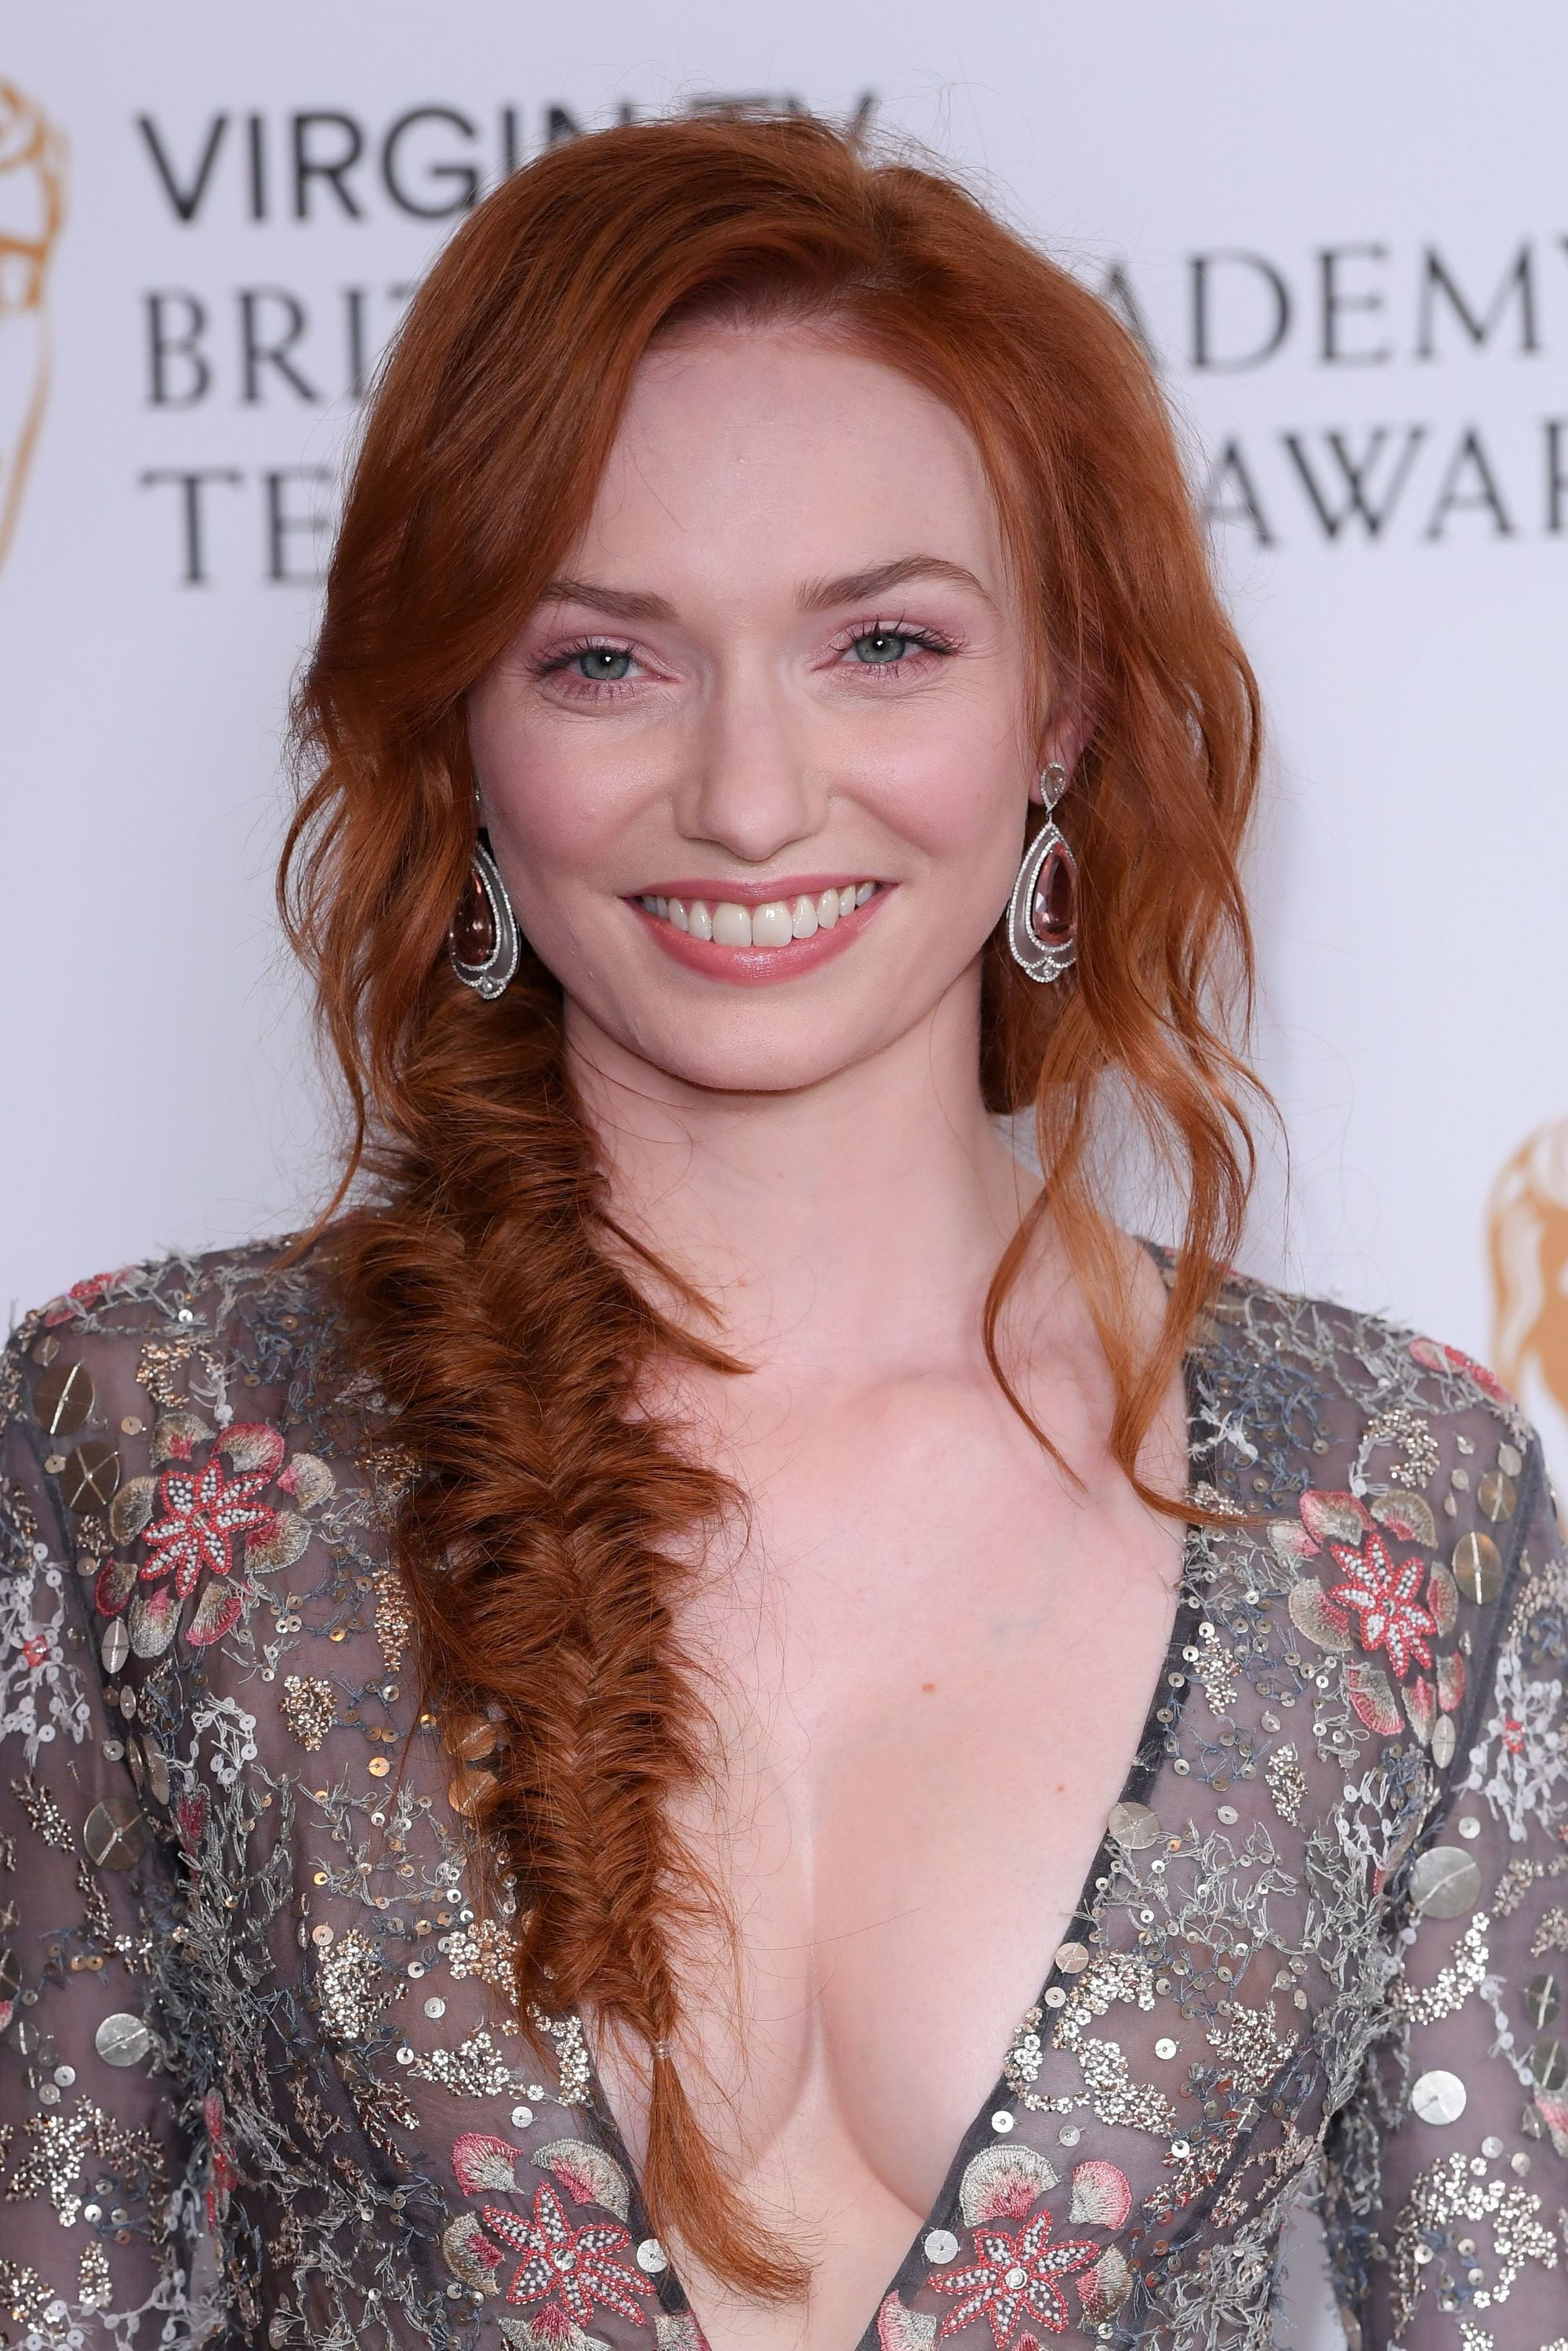 easy braids for long hair: eleanor tomlinson with side fishtail braid on the virgin tv bafta awards red carpet, wearing floral dress